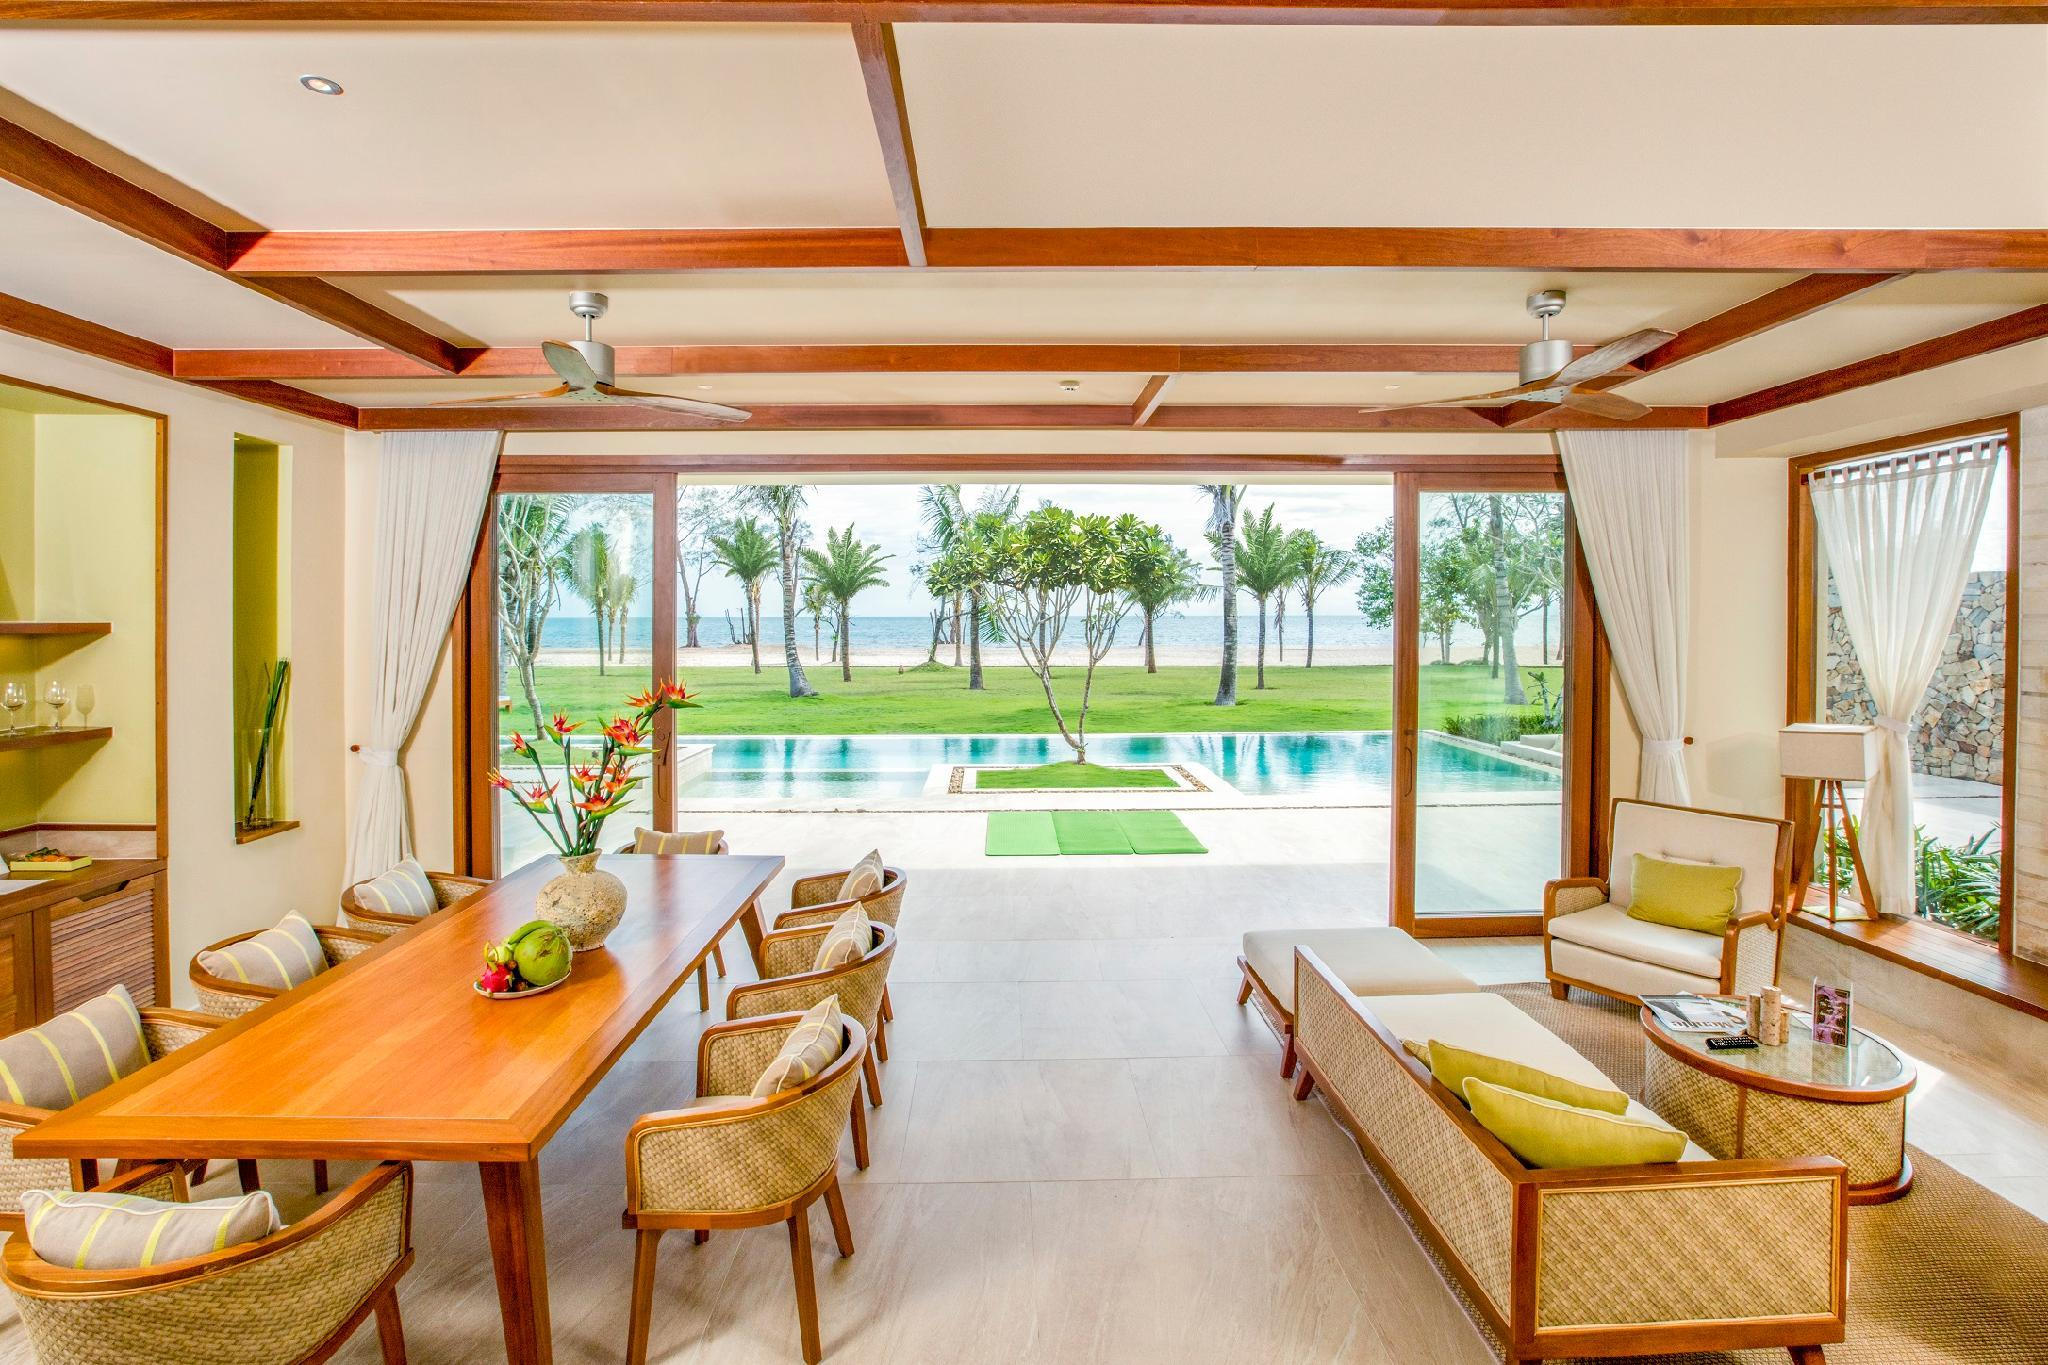 3-Bedroom Ocean Villa with Pool - All Spa treatment included